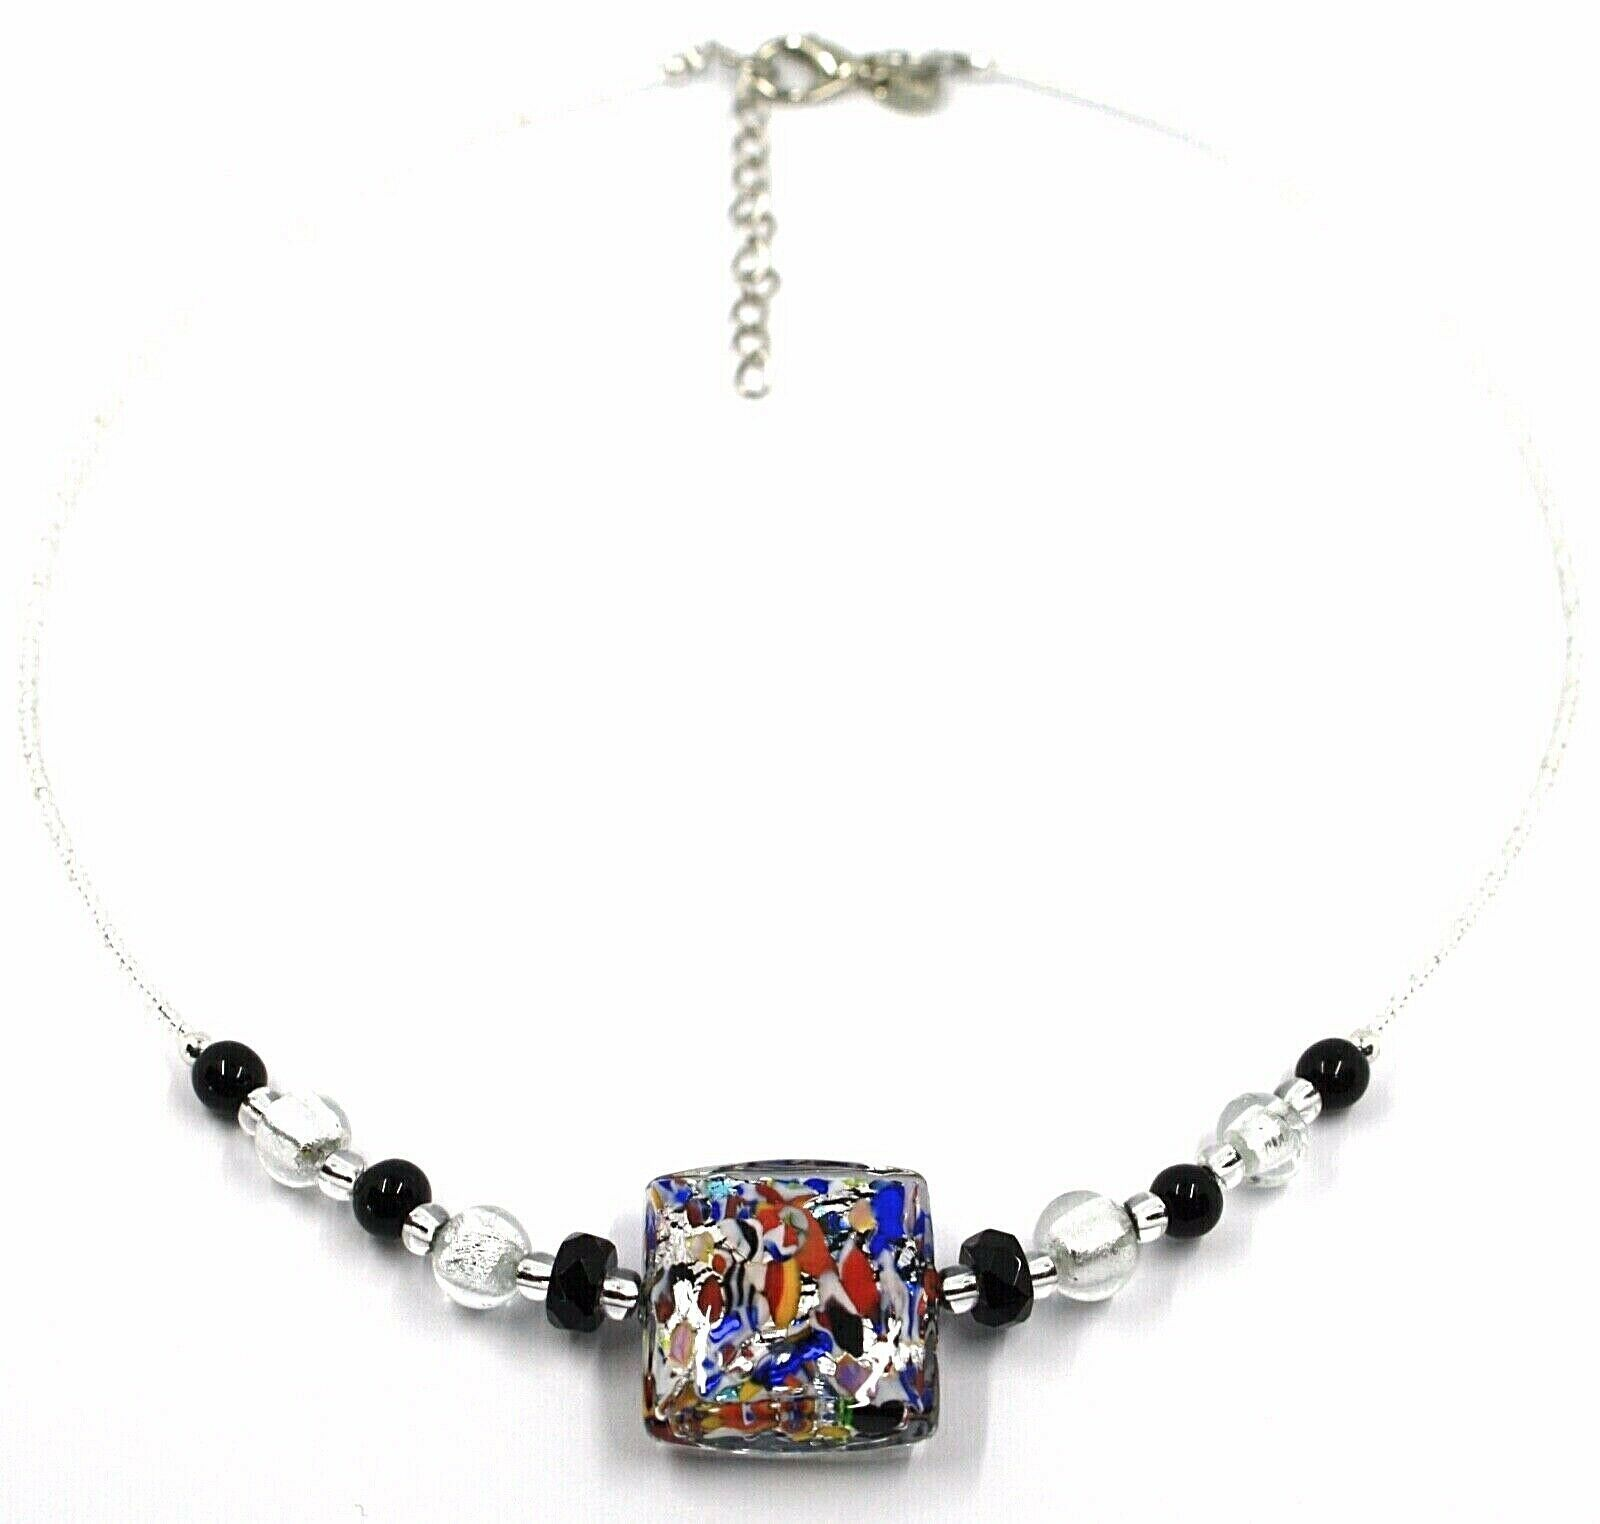 NECKLACE MACULATE MULTI COLOR MURANO GLASS BIG SQUARE, SILVER LEAF, ITALY MADE